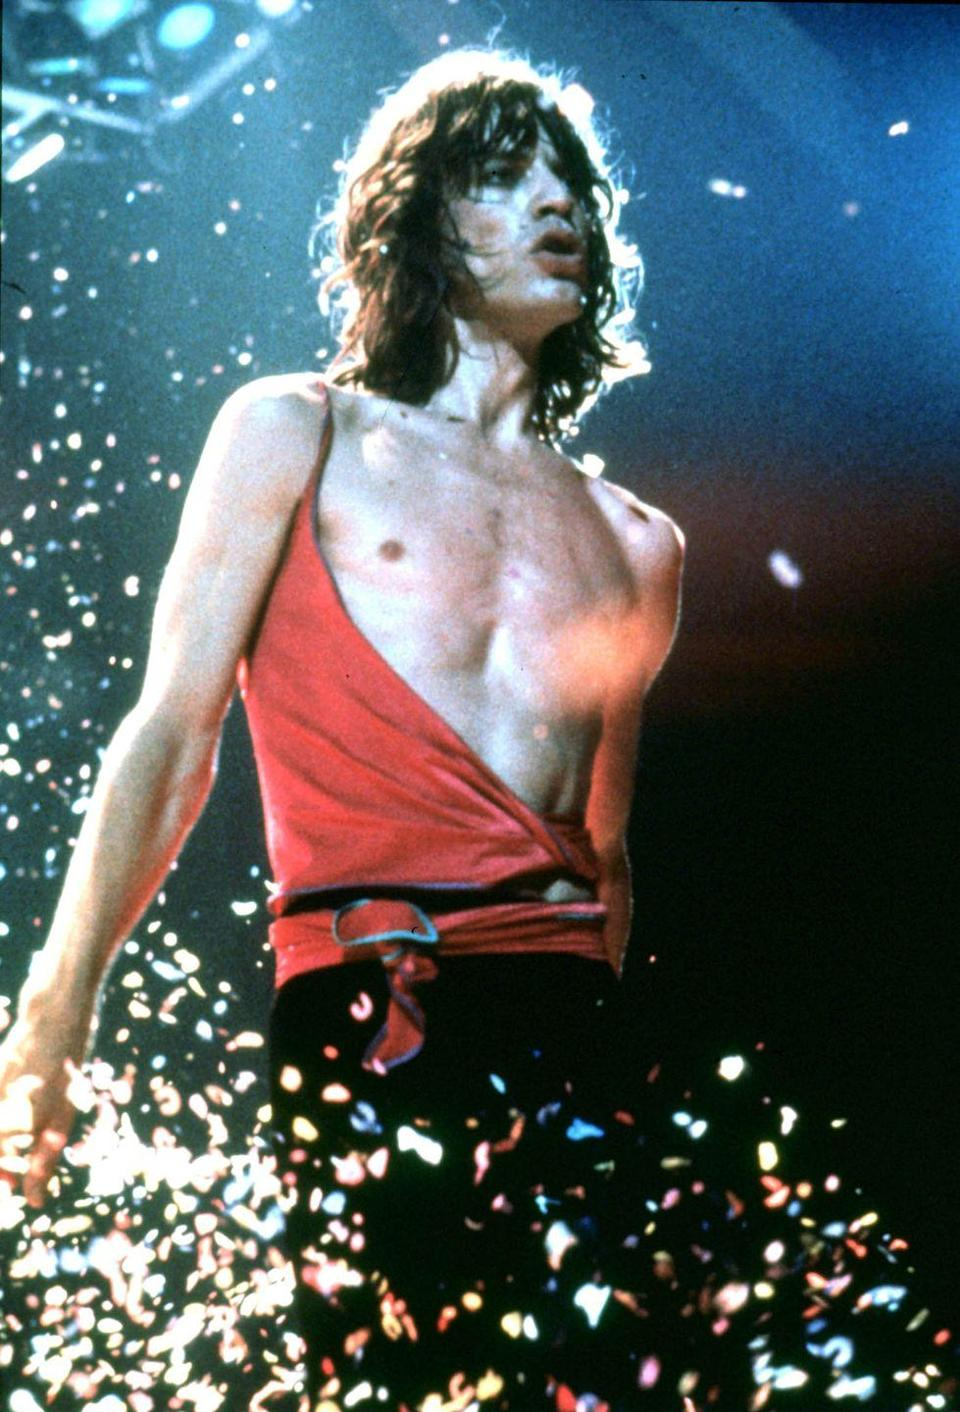 <p>Mick Jagger of the Rolling Stones performing on stage during their European tour in 1976</p>